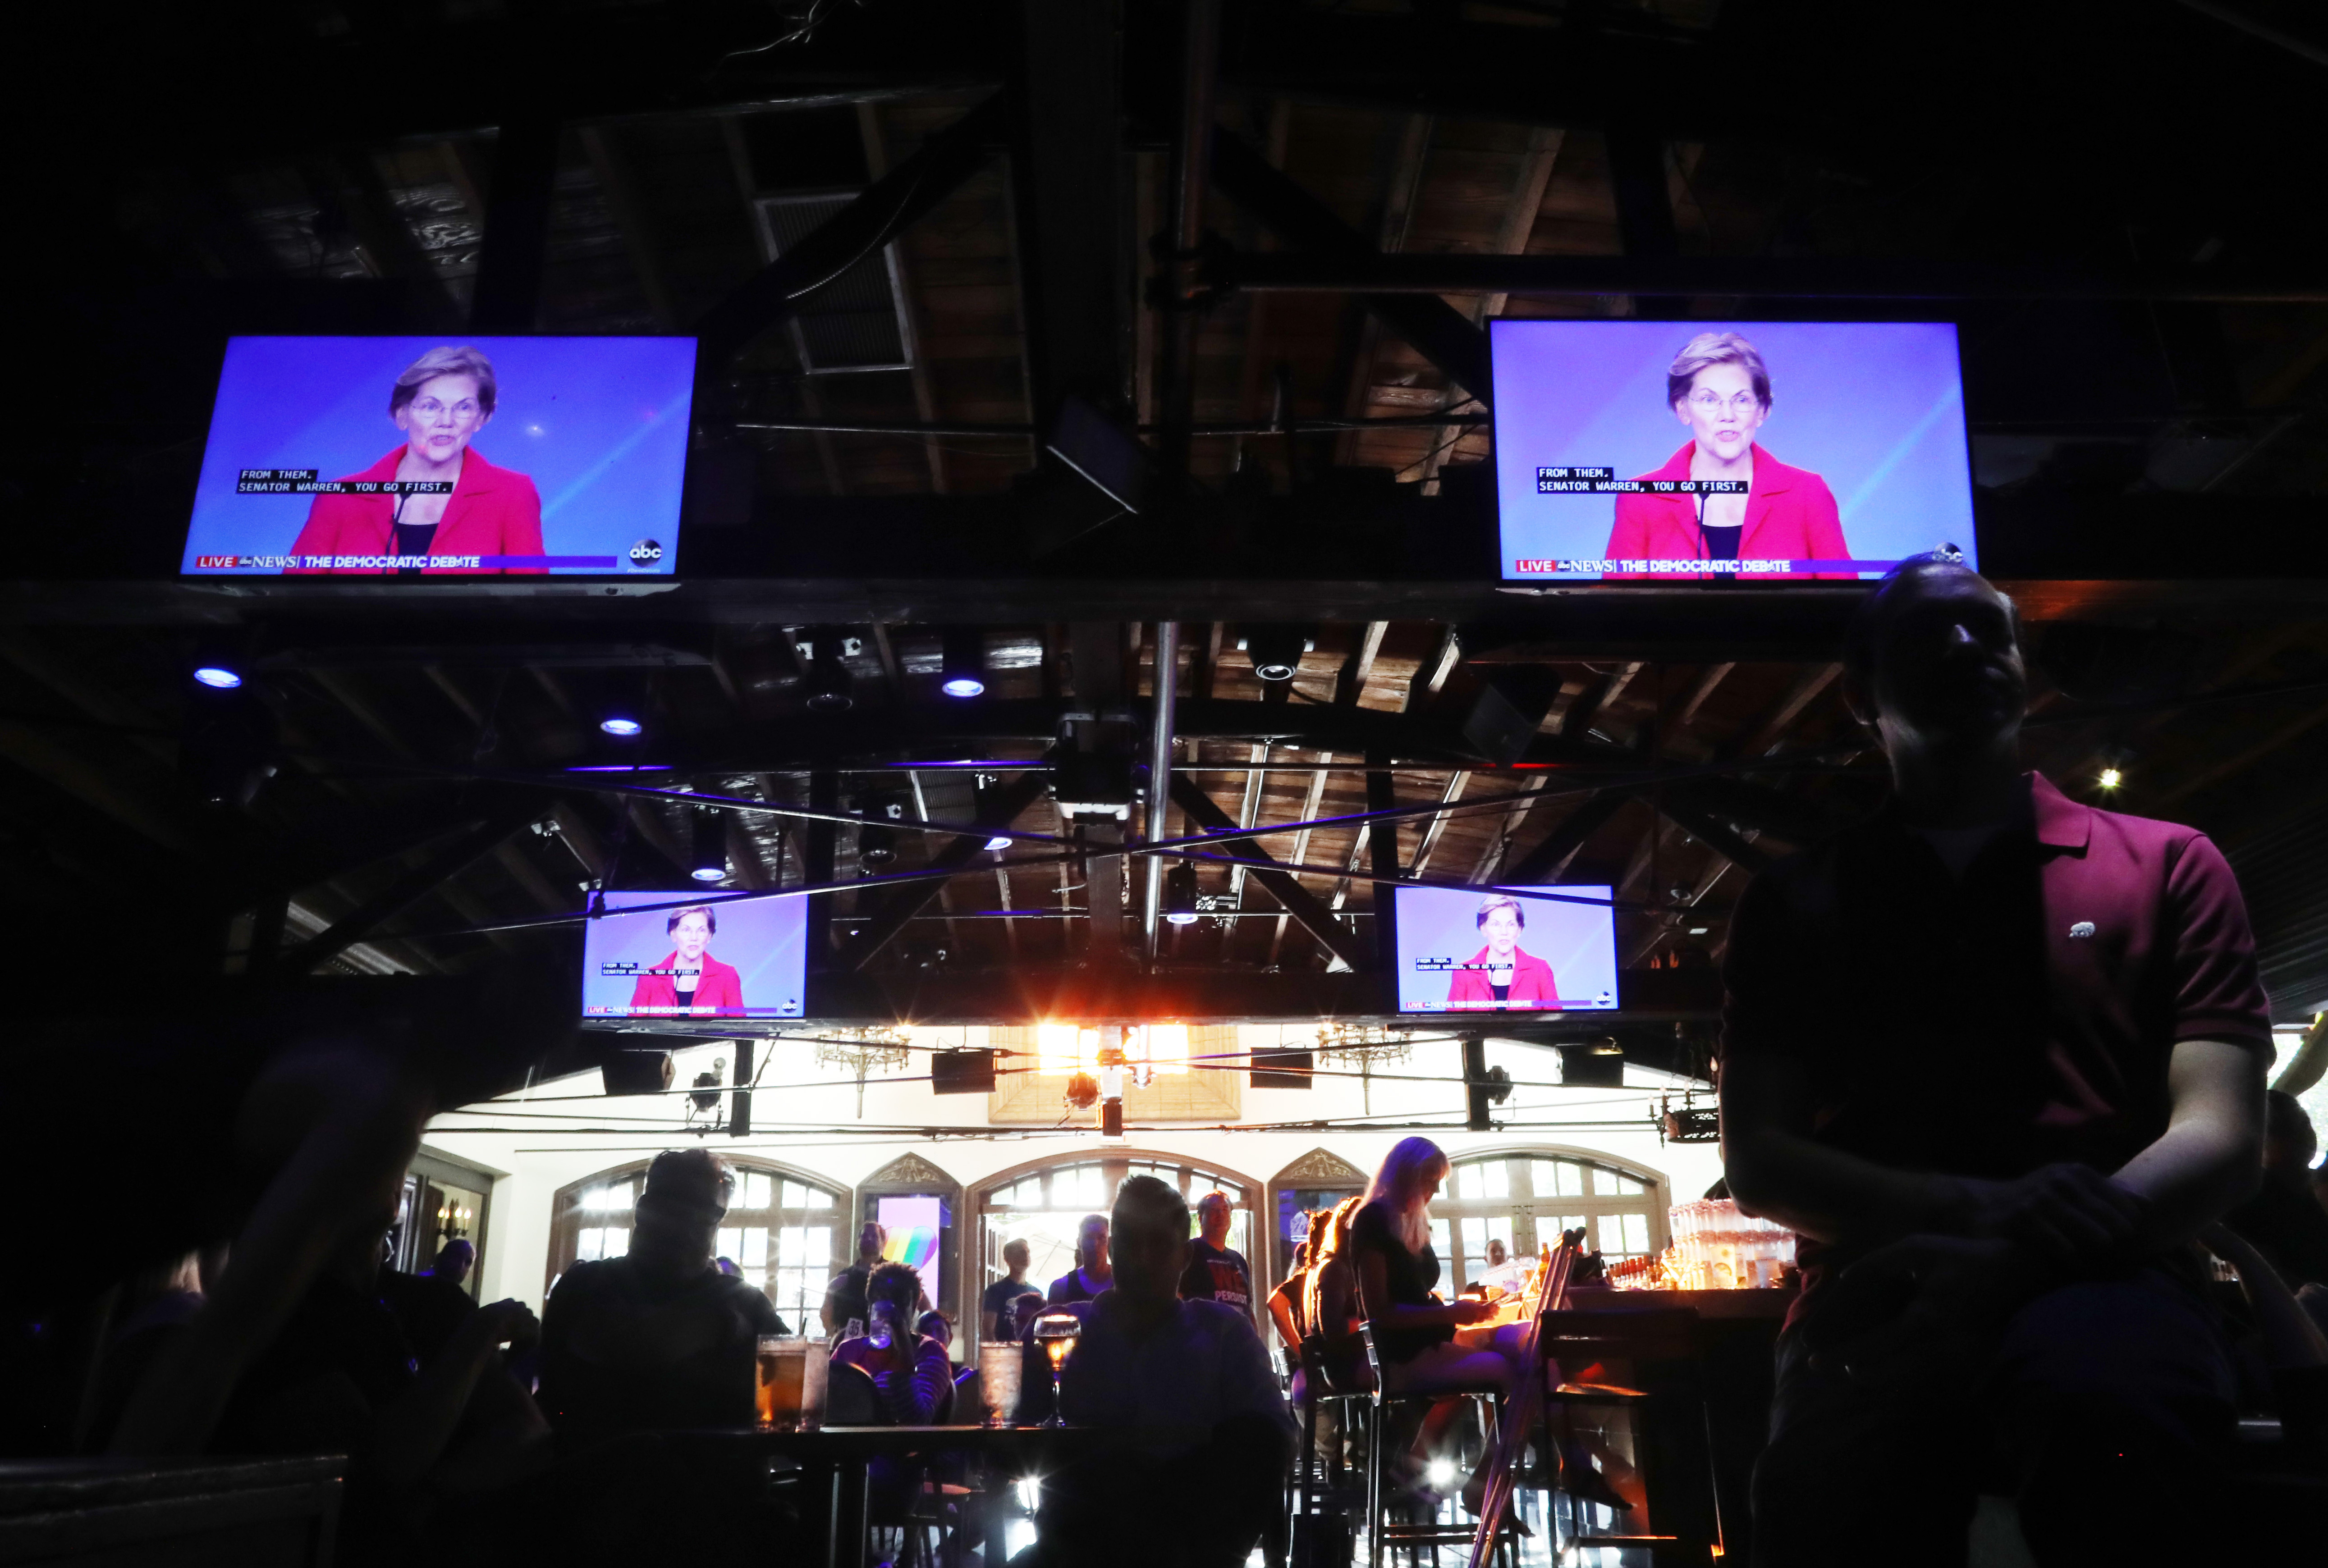 Senator Elizabeth Warren appears on several video screens above a crowd gathered at a bar.